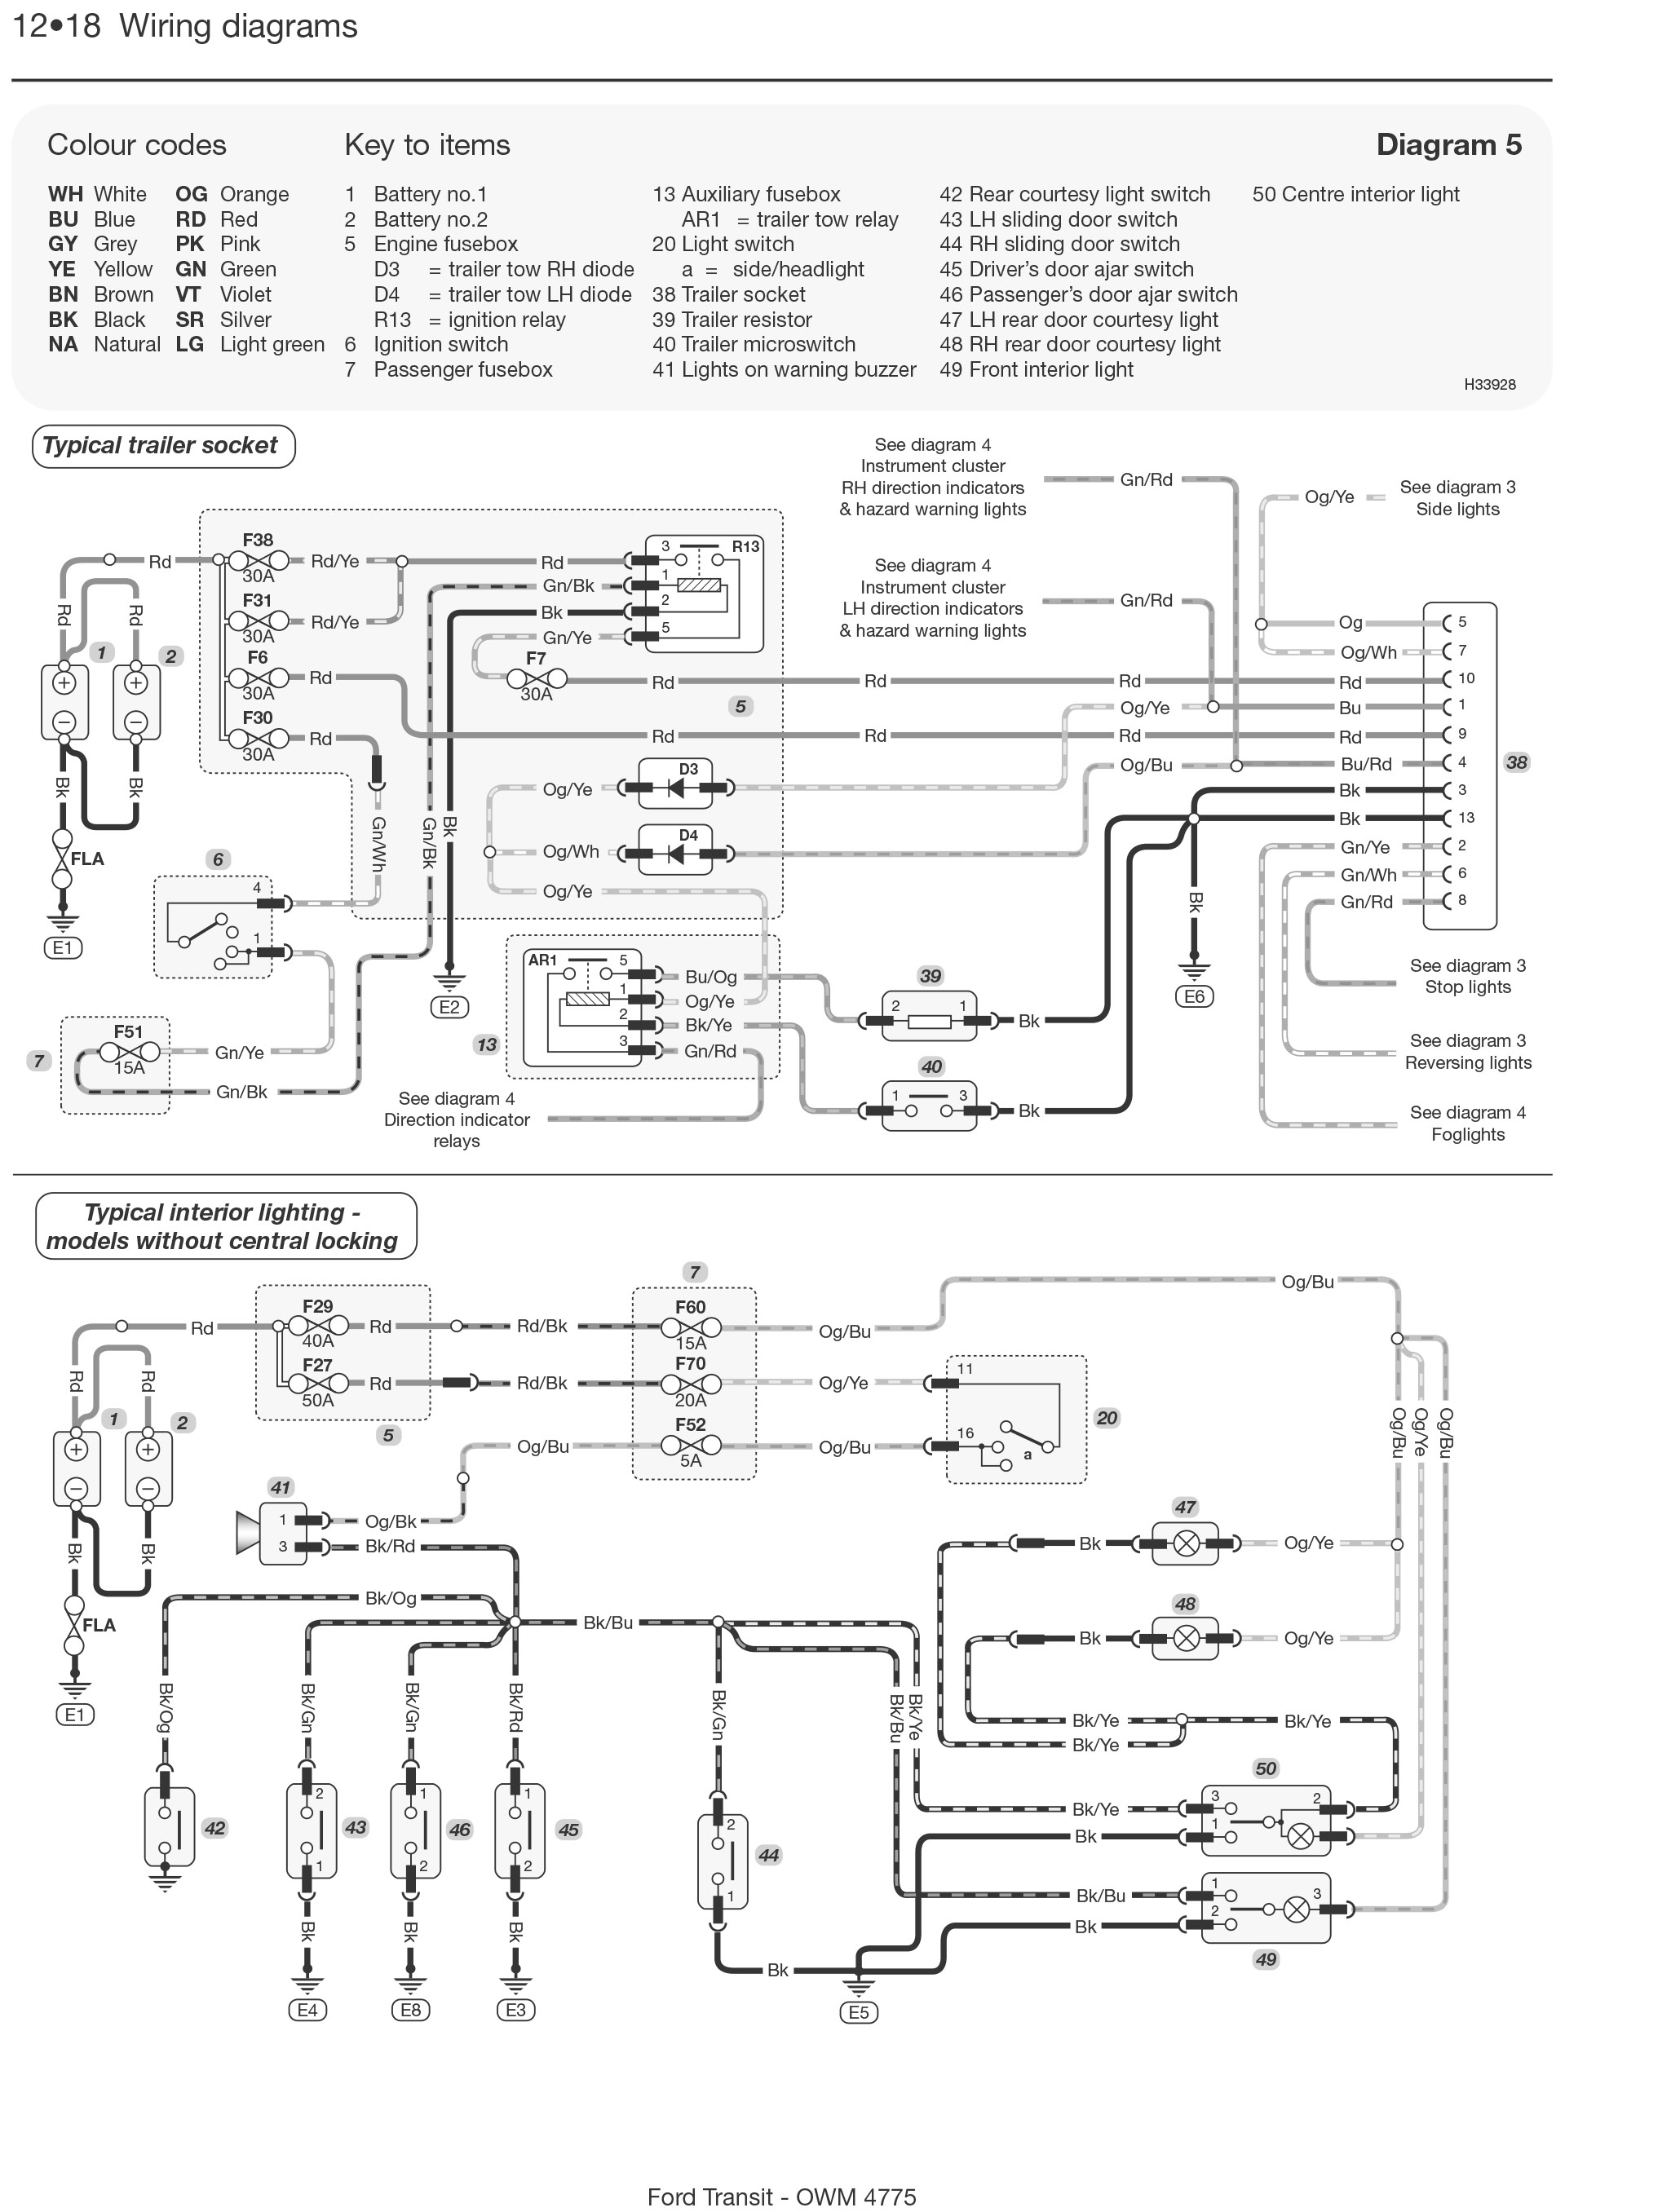 2016 Ford Transit Wiring Diagram Download - renewfestWeebly